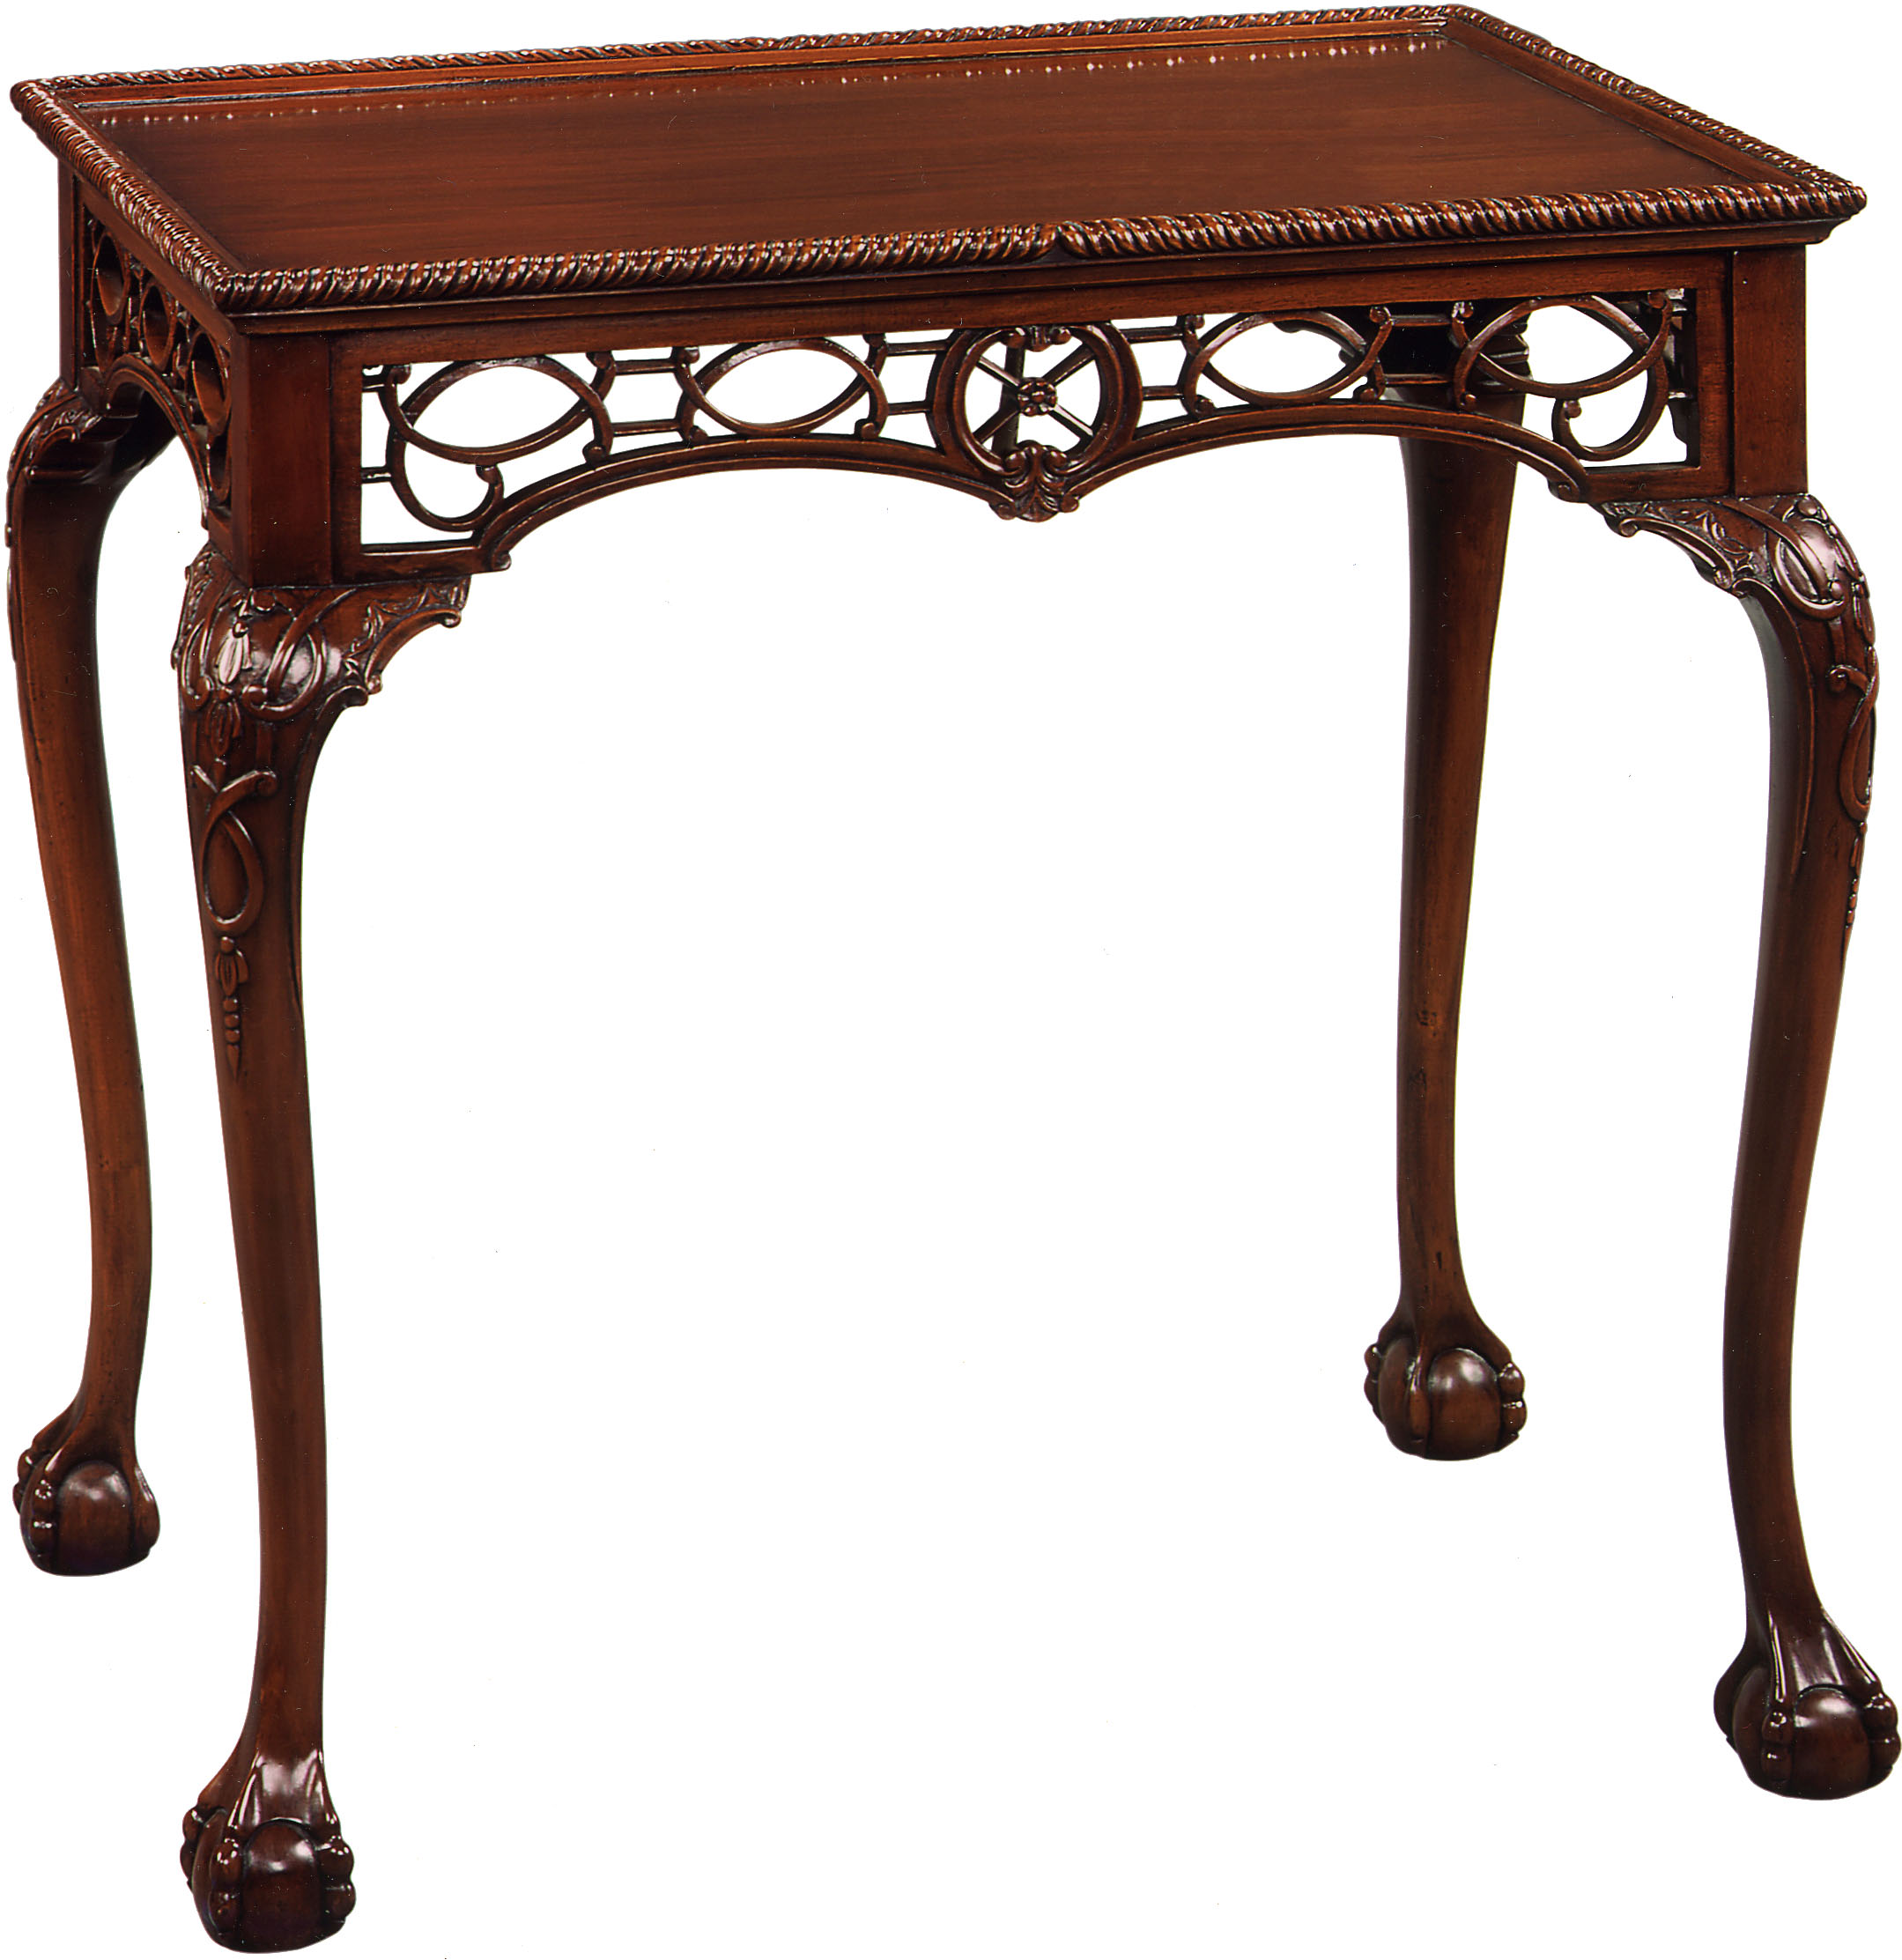 Most Expensive Furniture In The World Top 5